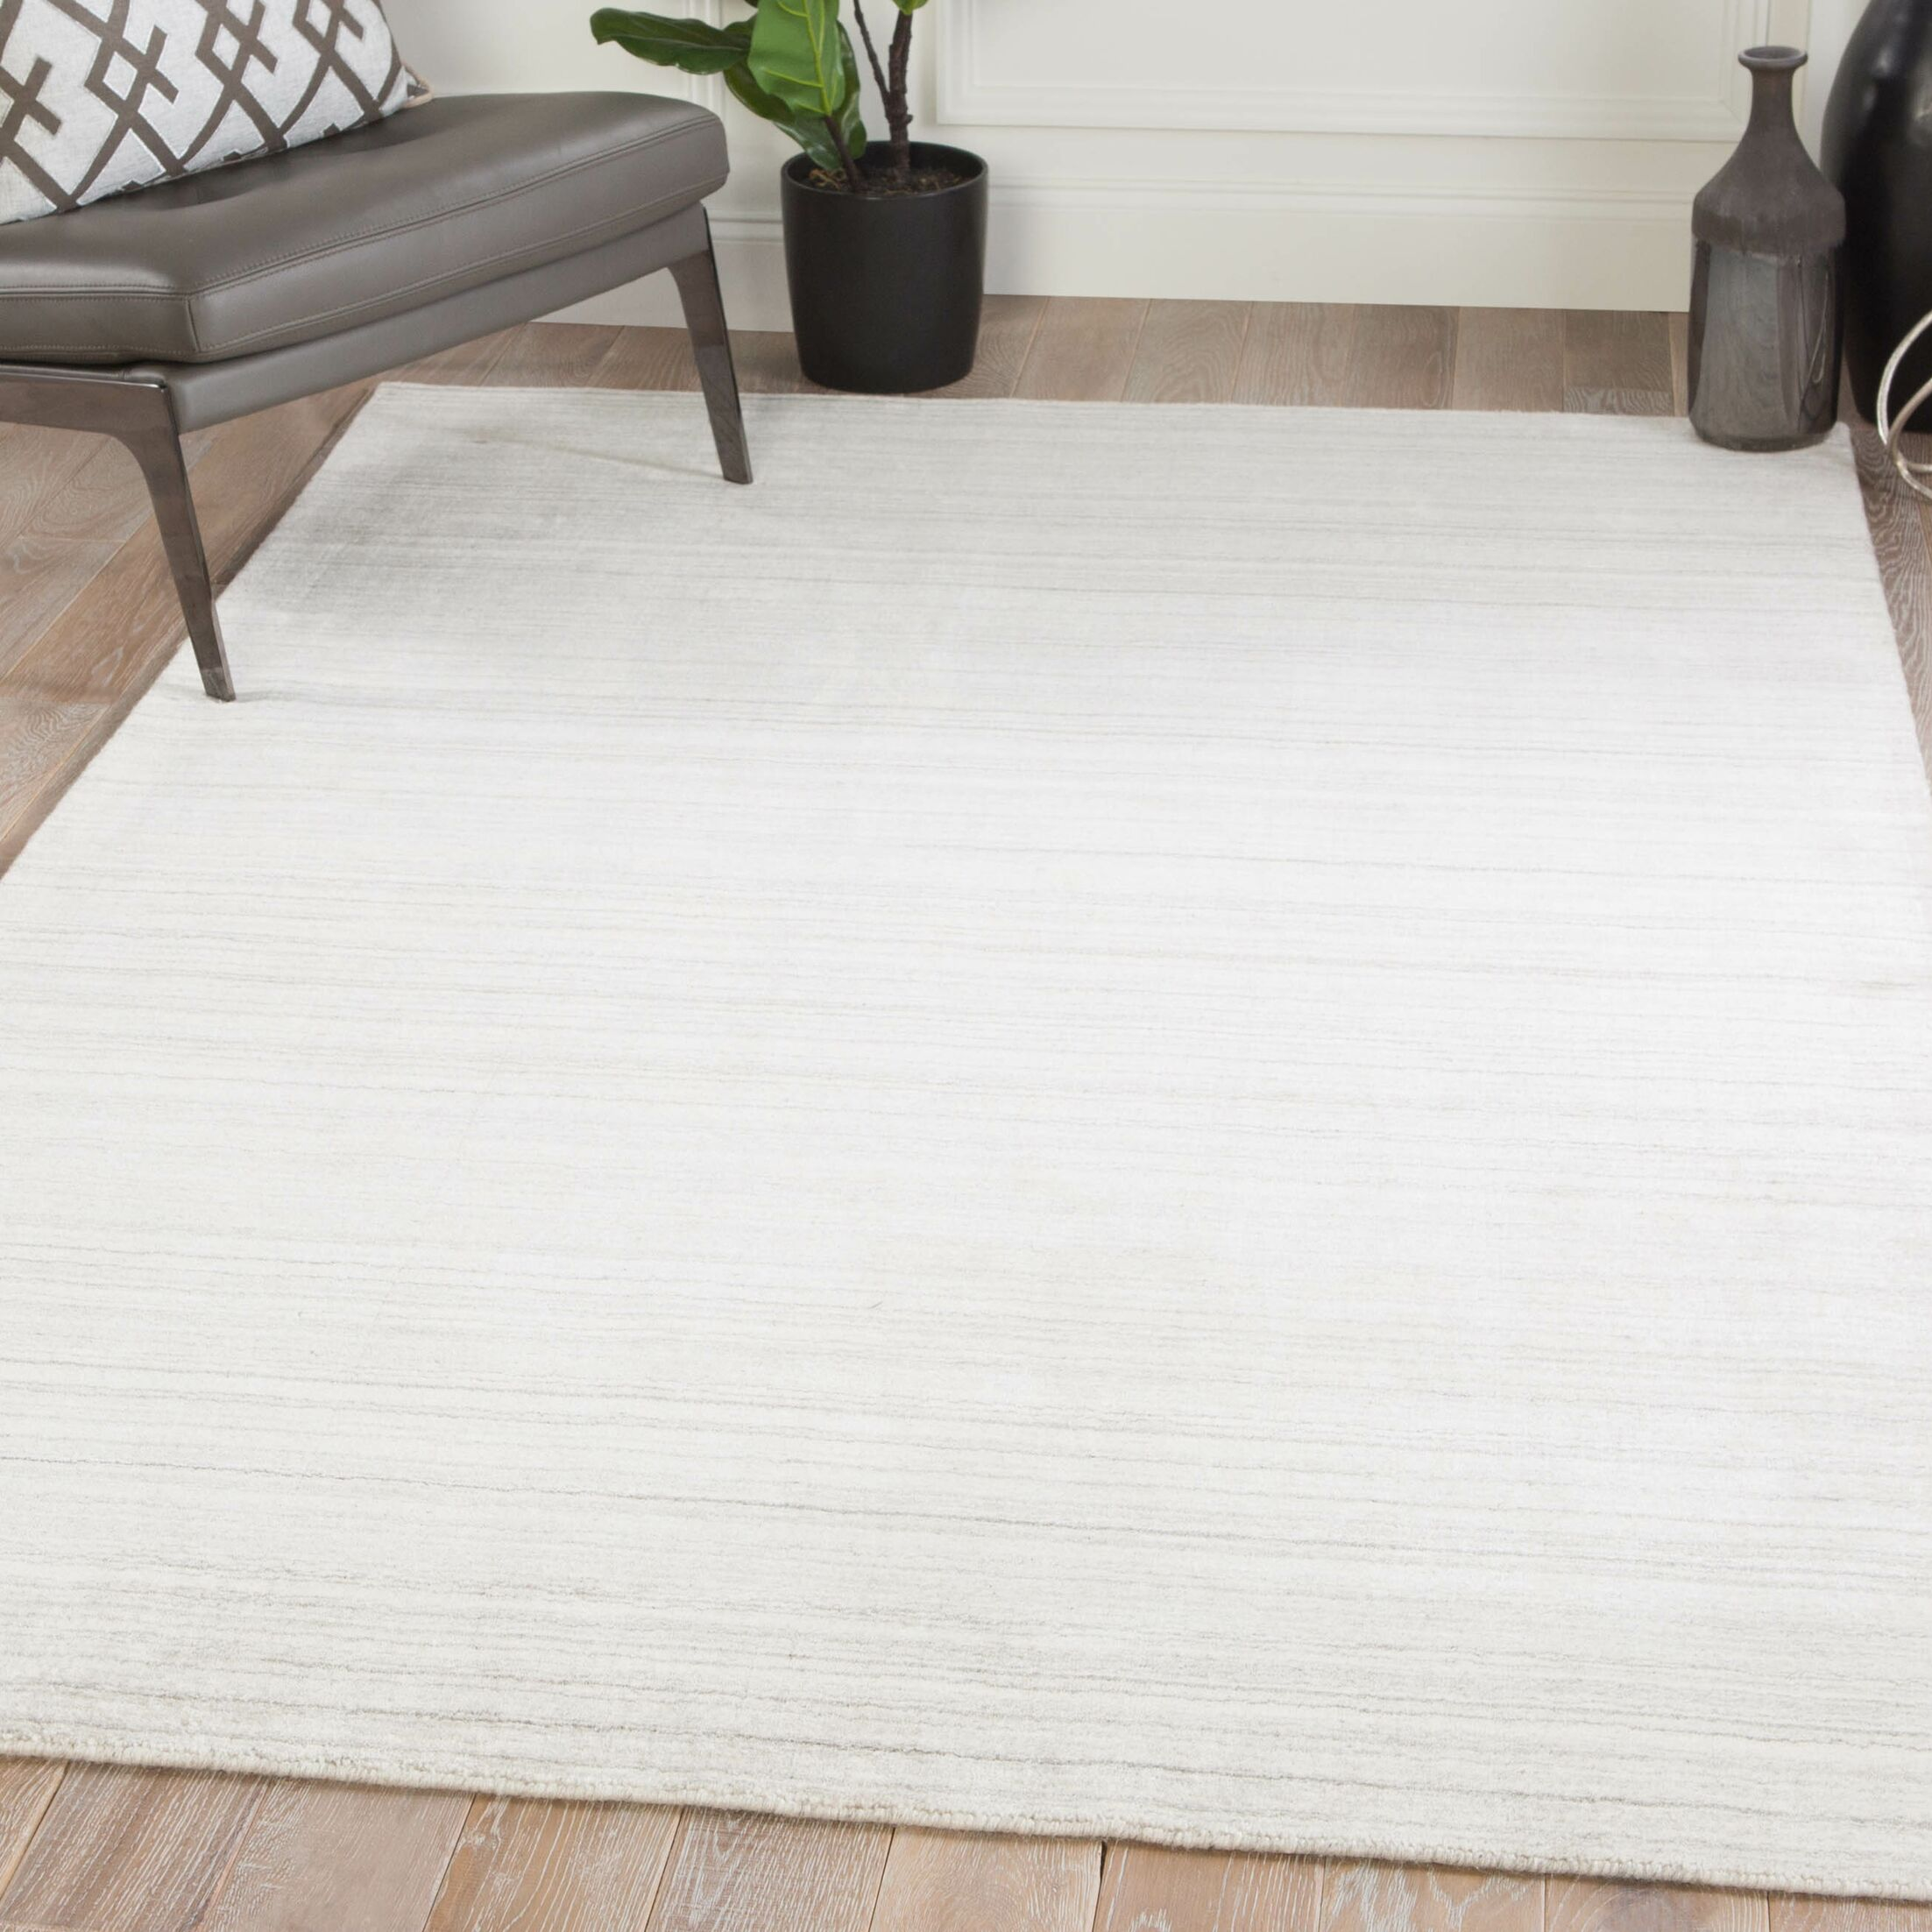 Knott Hand-Woven Ivory/Gray Area Rug Rug Size: Rectangle 9' x 12'